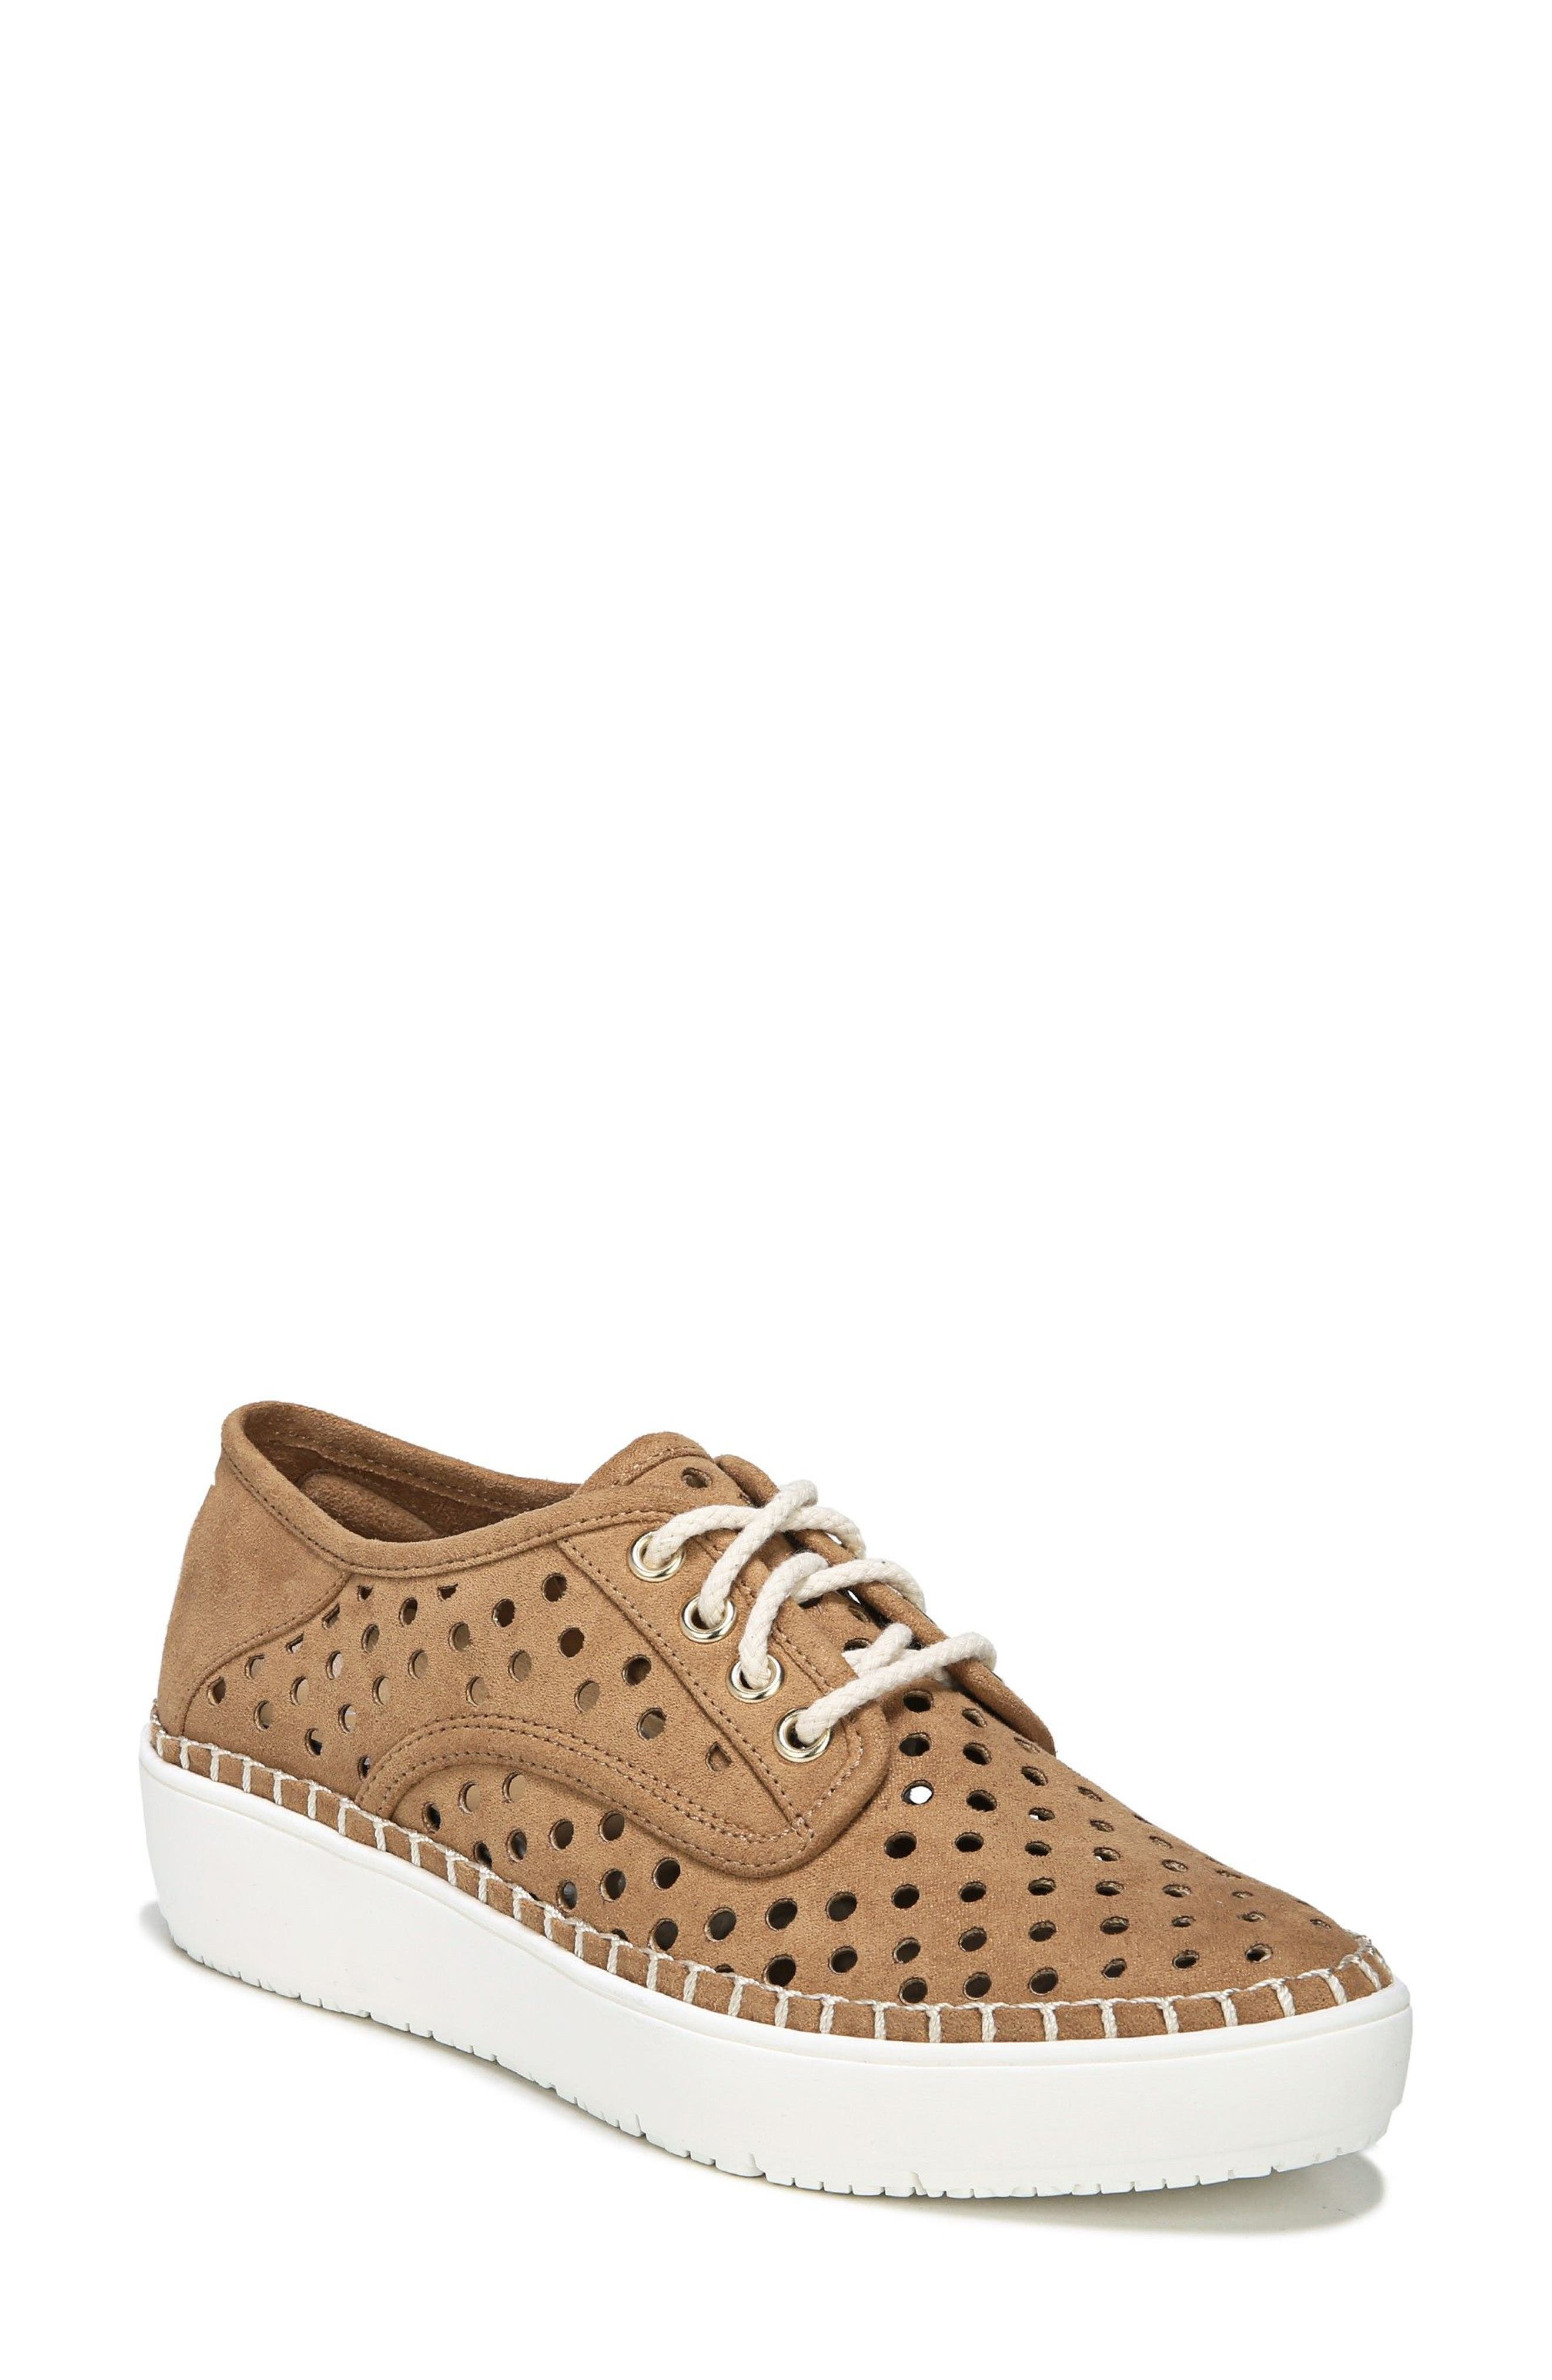 Global Sneaker,                         Main,                         color, SADDLE FAUX LEATHER